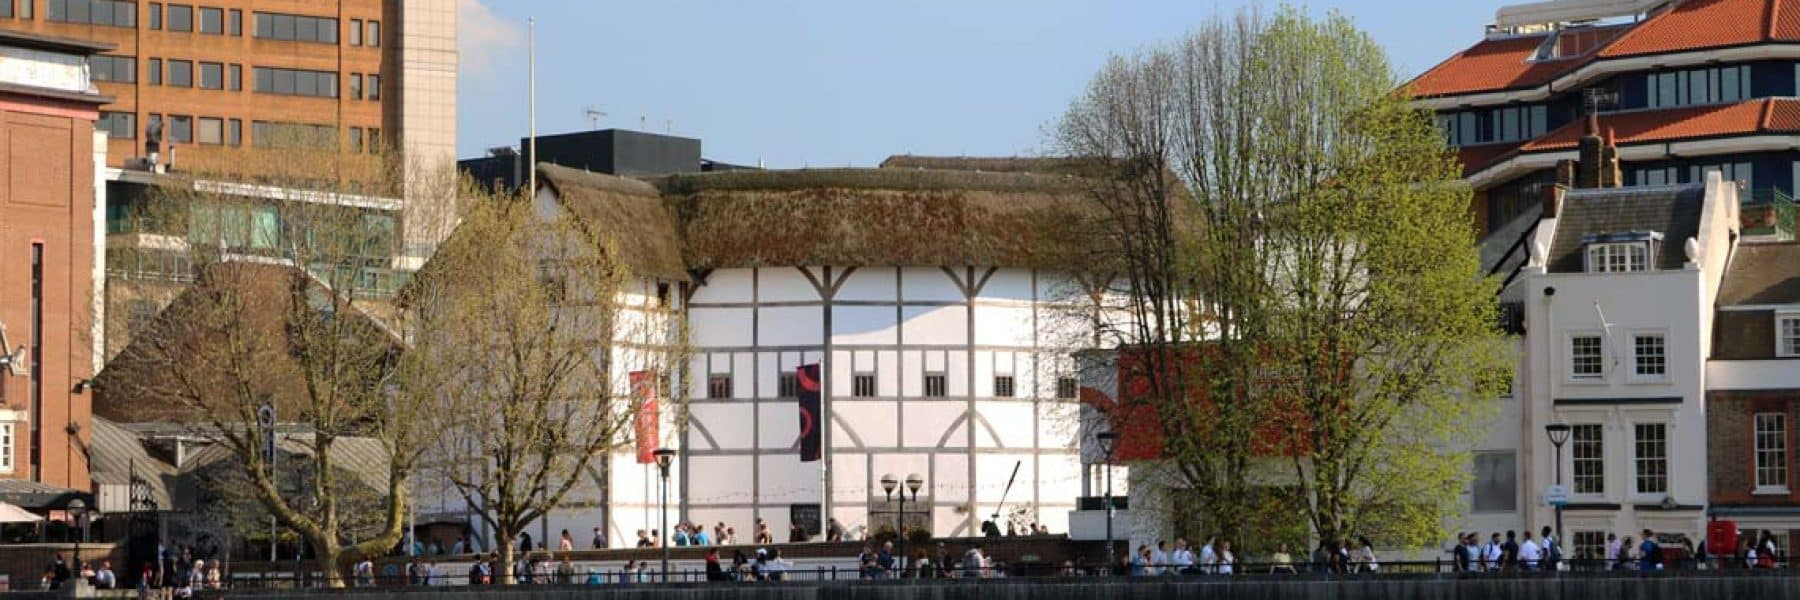 Shakespeare's Globe, Bankside